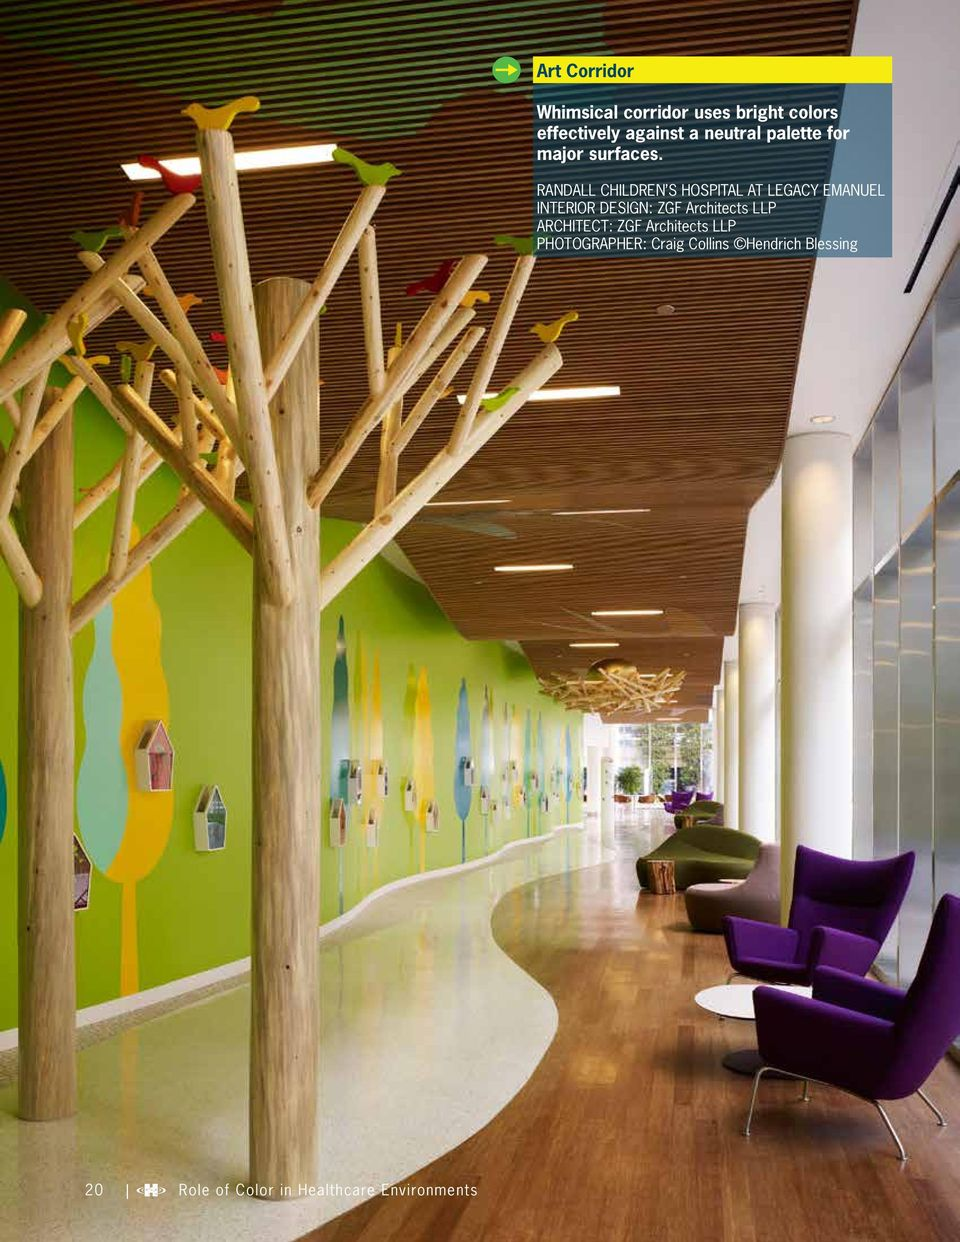 RANDALL CHILDREN S HOSPITAL AT LEGACY EMANUEL INTERIOR DESIGN: ZGF Architects